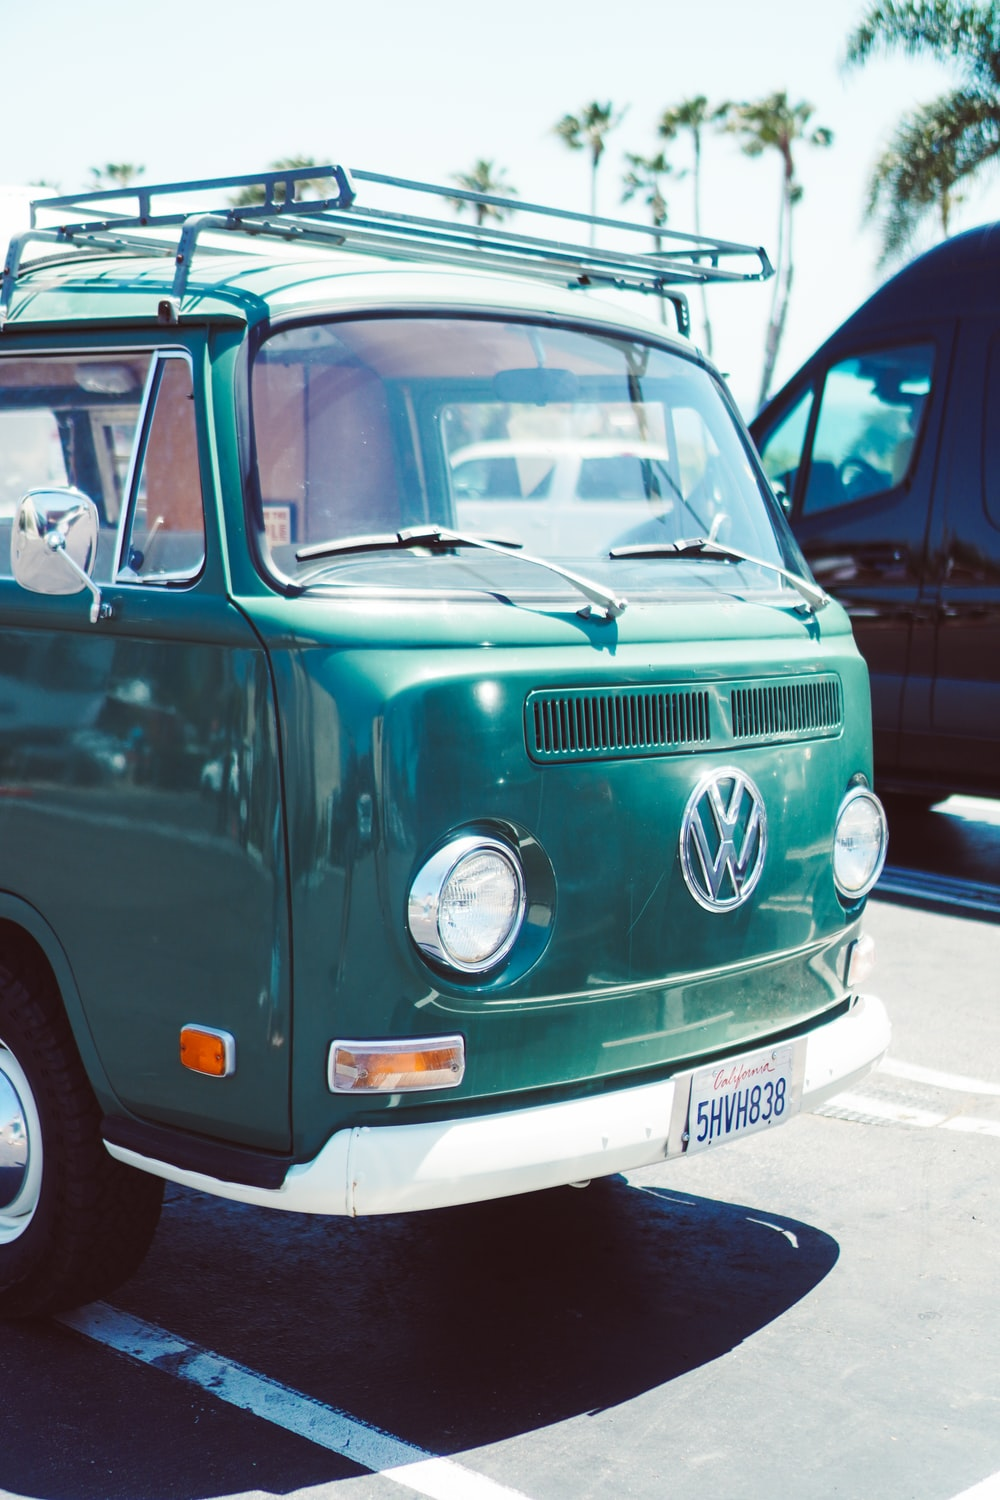 green and white volkswagen t-2